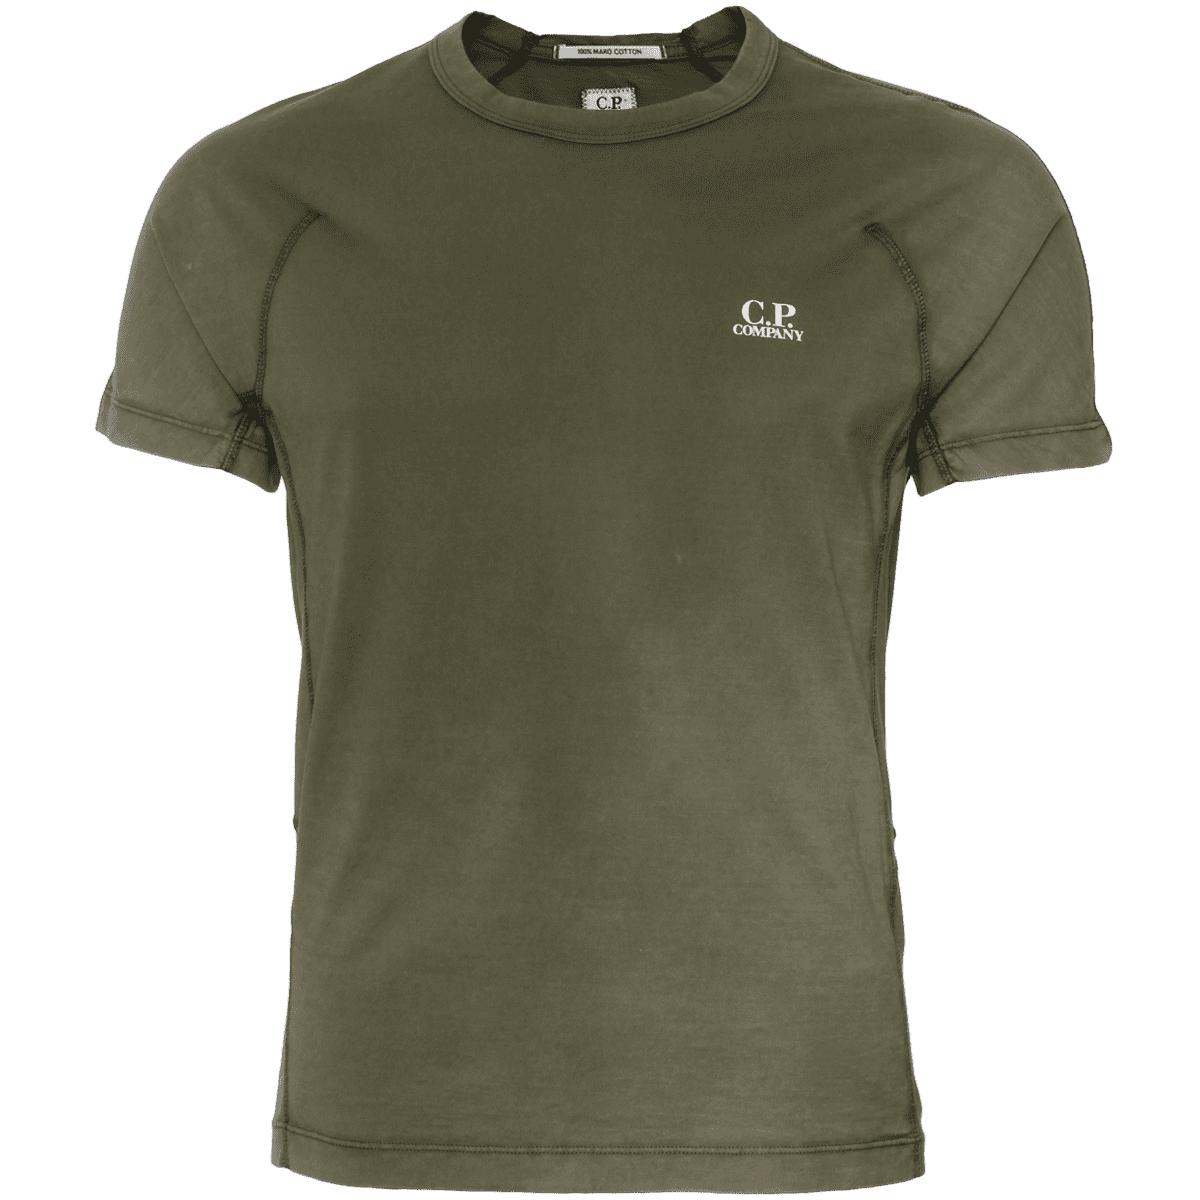 Cabinero Berlin Herrenmode SS17 C.P.Company T-Shirt 02CMTS151A000444S (5)